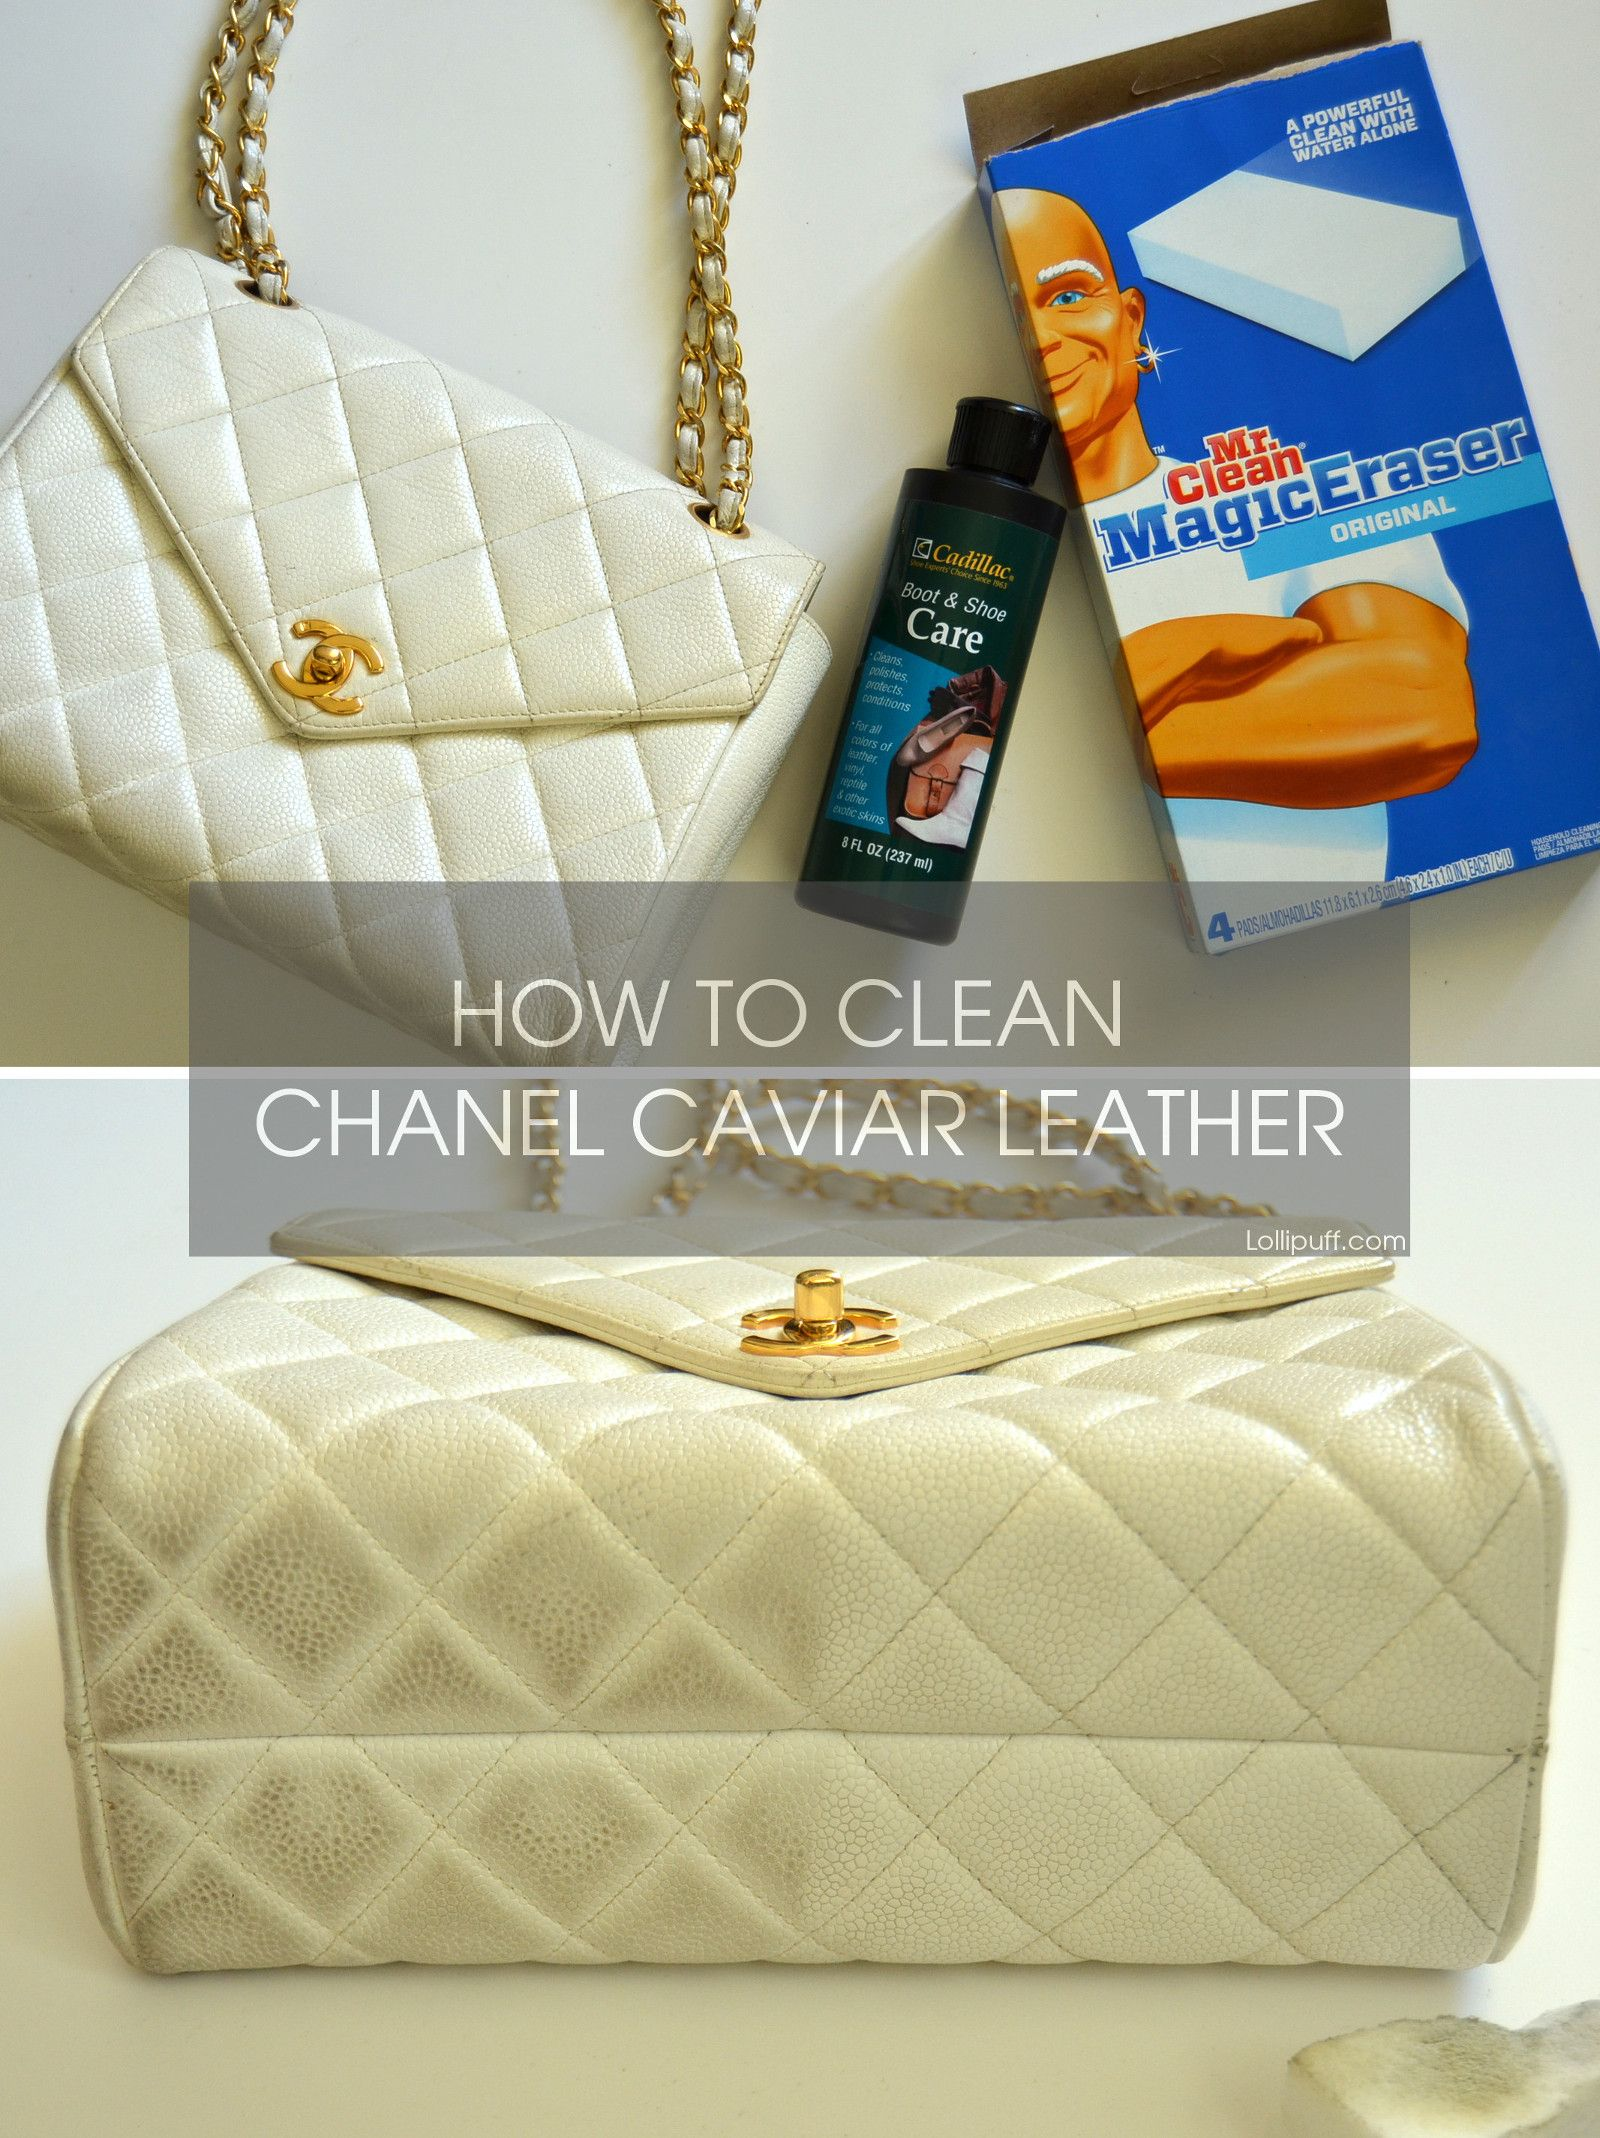 Chanel S Celebrated Caviar Leather Is Extremely Durable Making Handbags In This Leather Very Desirable However Lig Clean Leather Purse Leather Purses Leather